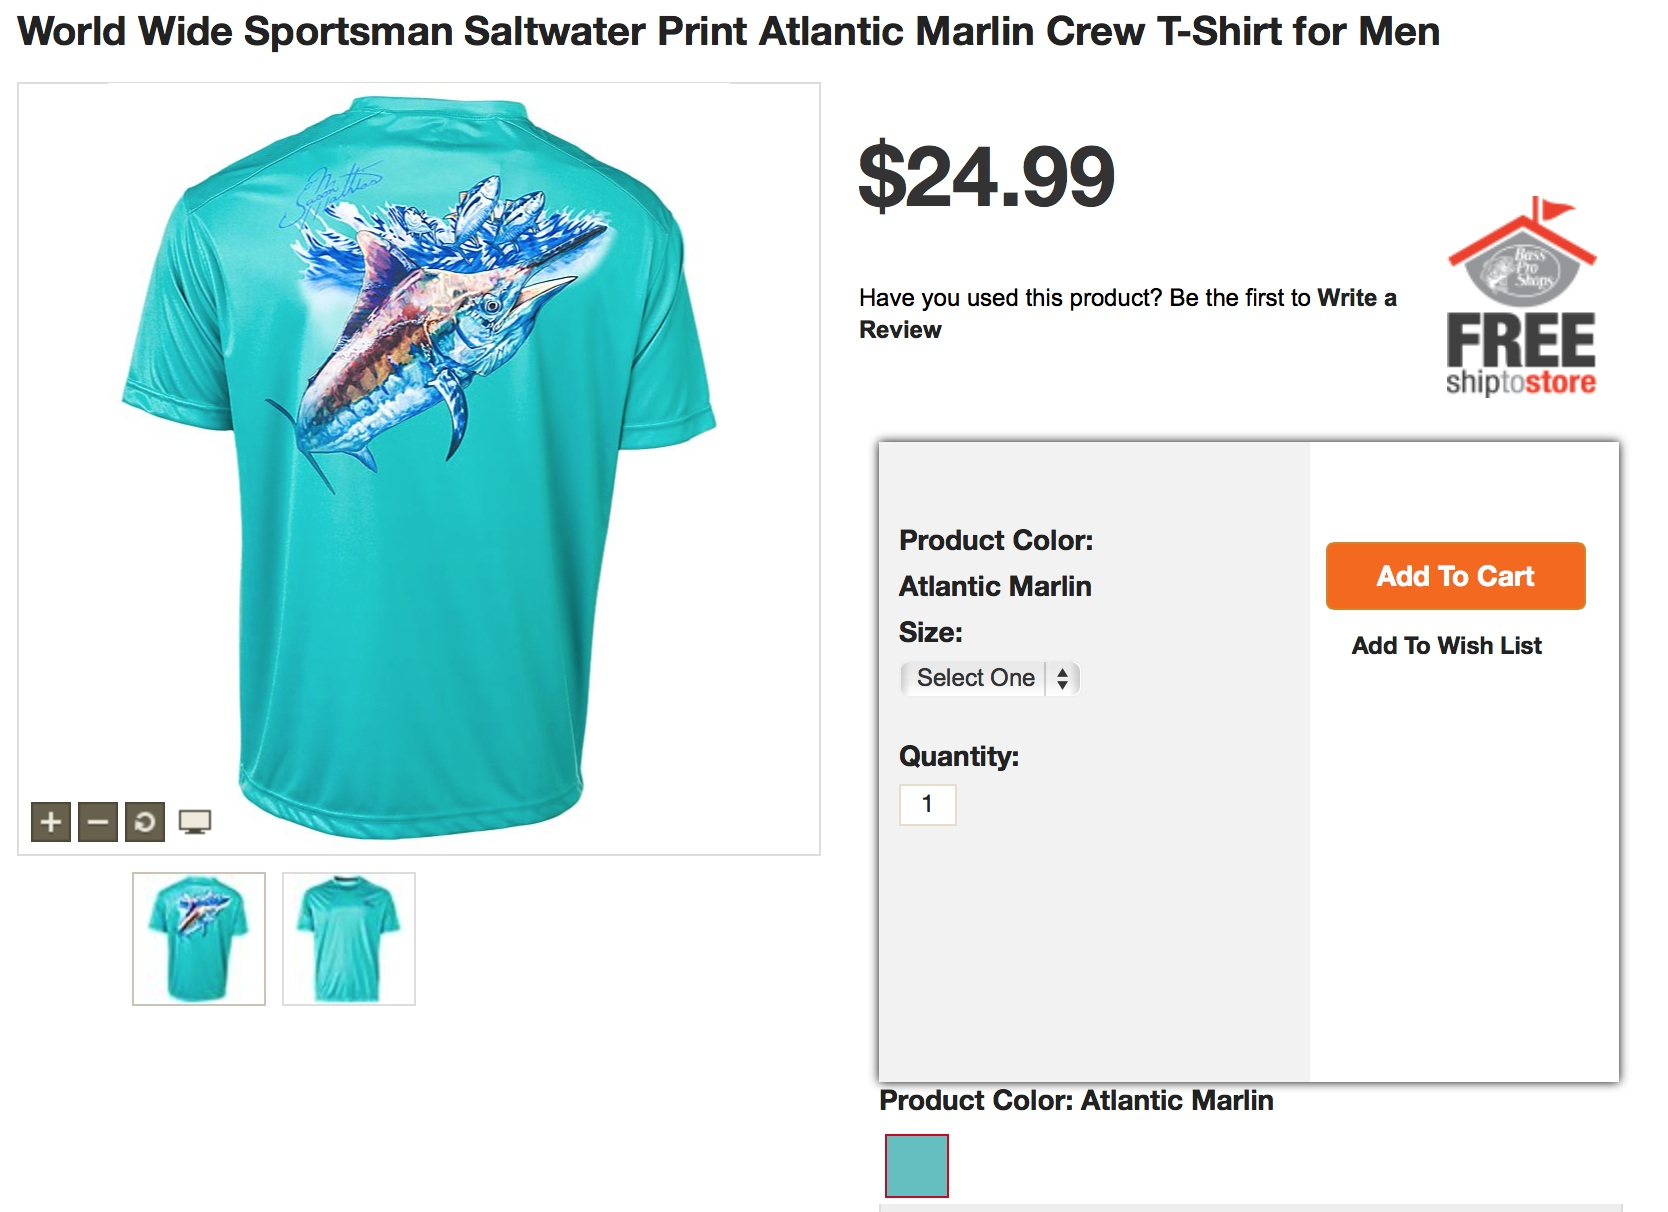 marlin-shirt-jason-mathias.jpg